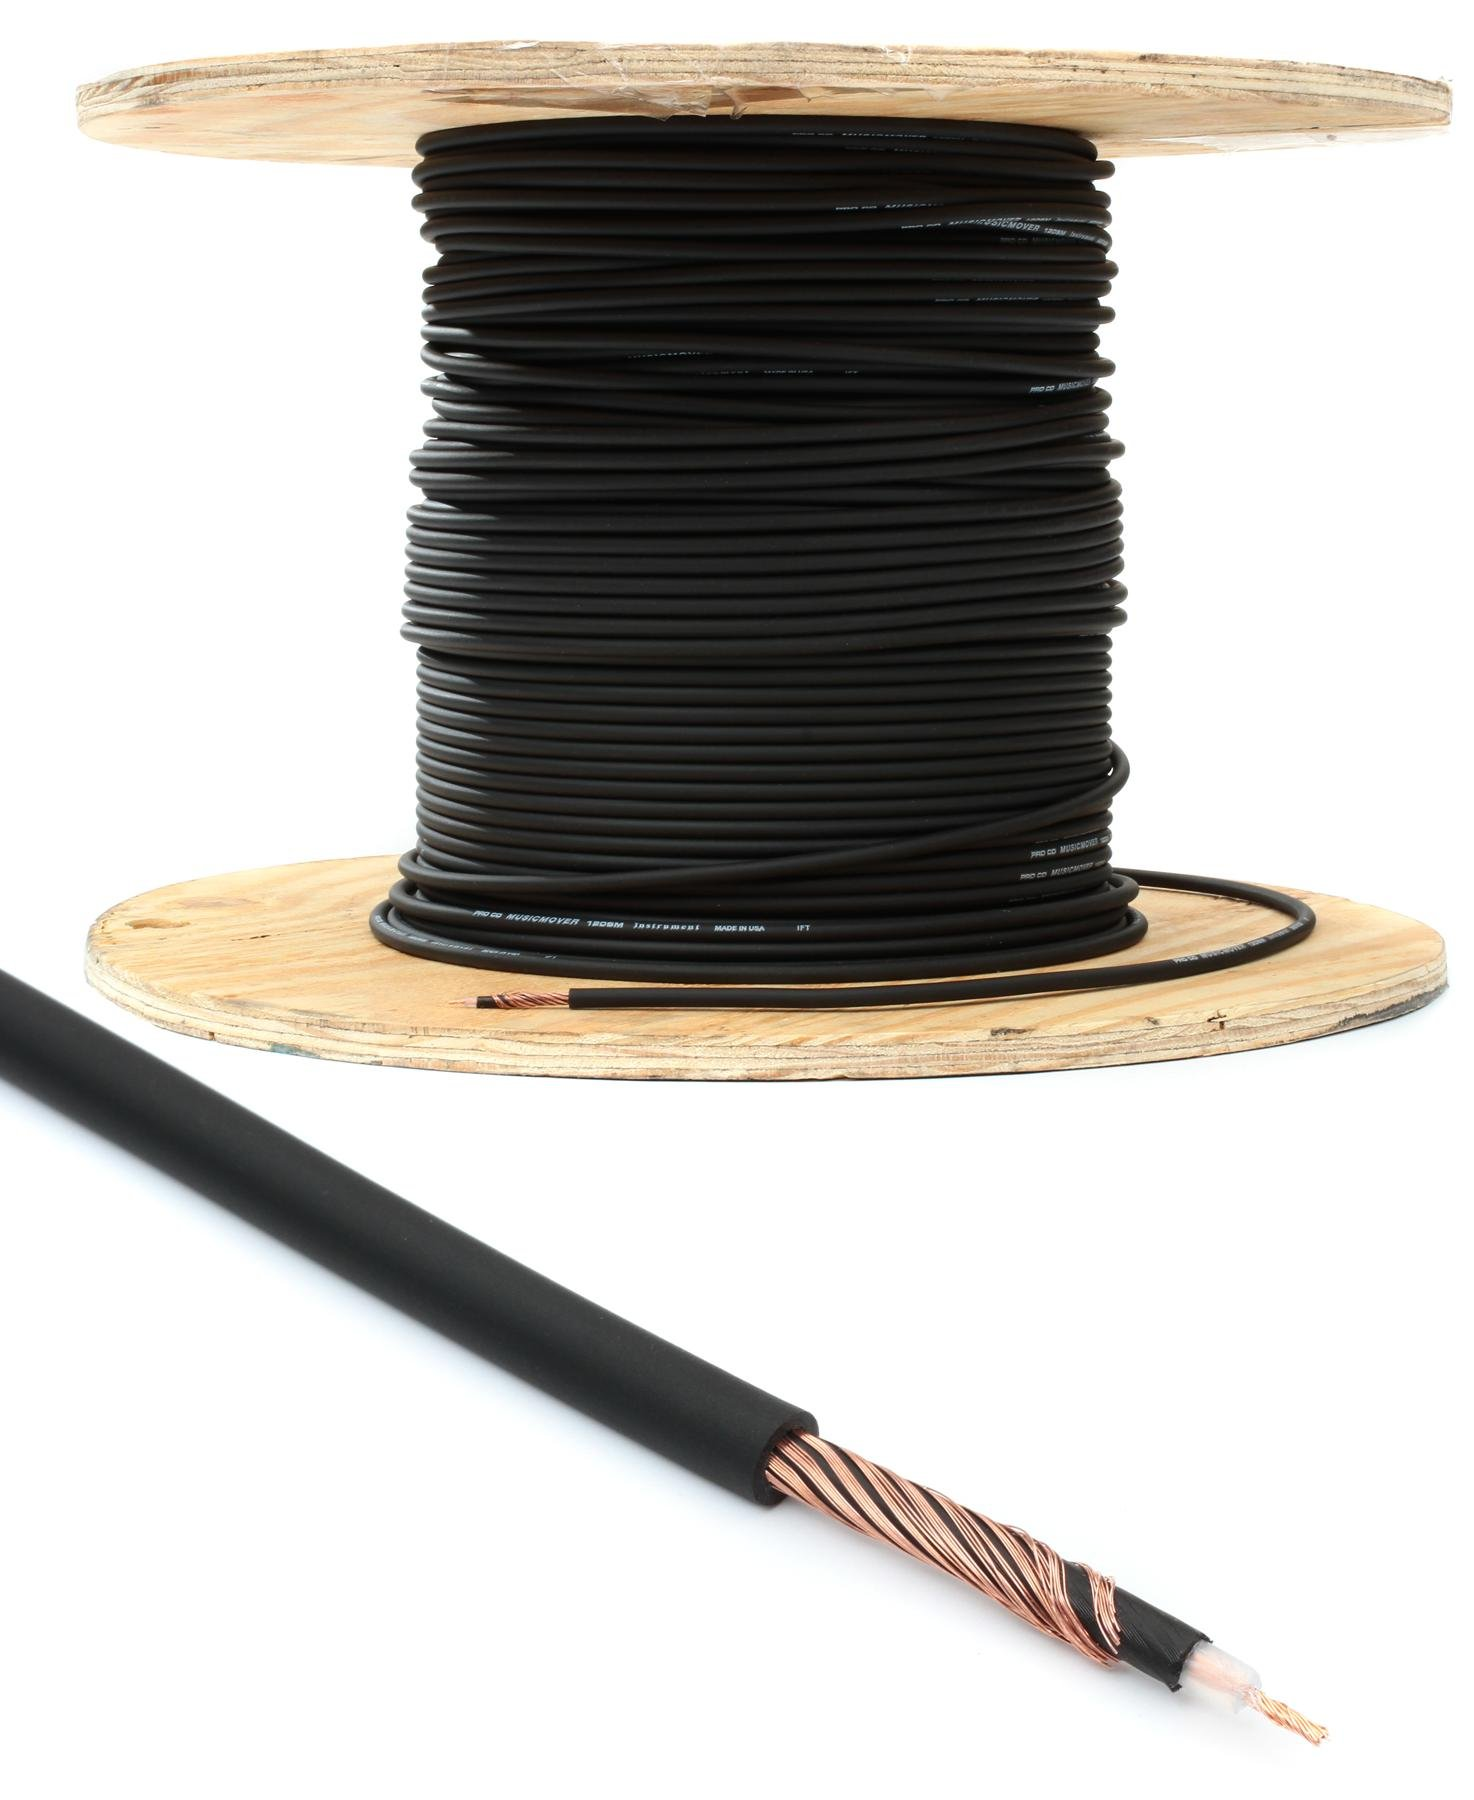 Pro Co 120SM Bulk Instrument Wire (priced per foot) | Sweetwater